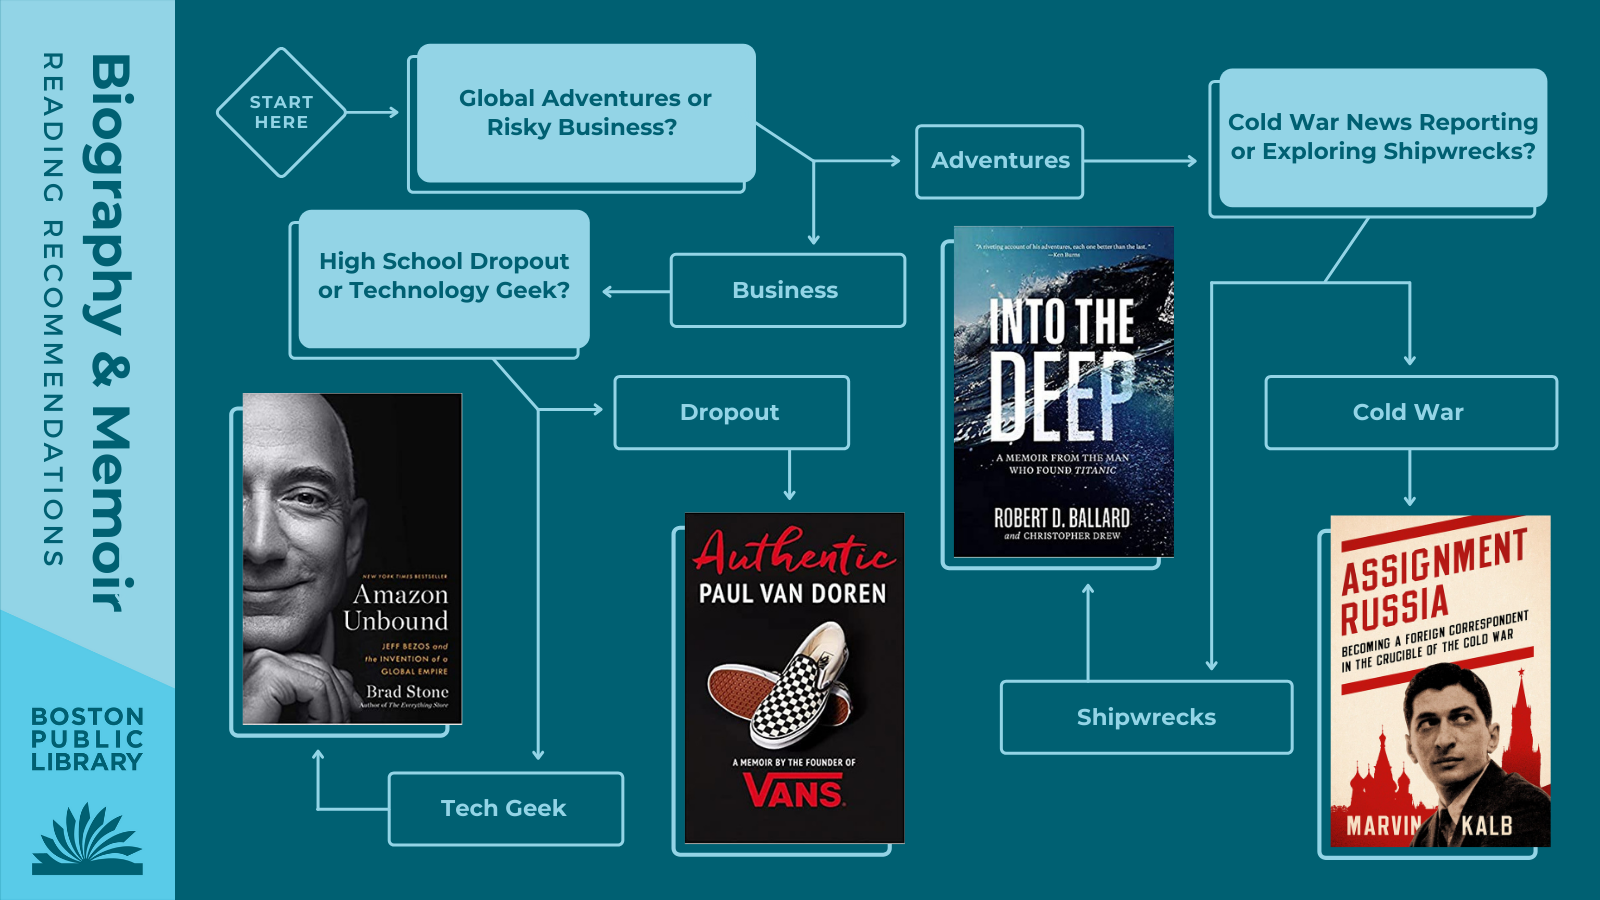 Biography & Memoir Reading Recommendations | Global Adventures or Risky Business? Adventures —> Cold War News Reporting (Assignment Russia) or Exploring Shipwrecks? —> Into the Deep by Robert D. Ballard | Business —> High School Dropout (Authentic by Paul Van Doren) or Technology Geek (Amazon Unbound by Brad Stone)?